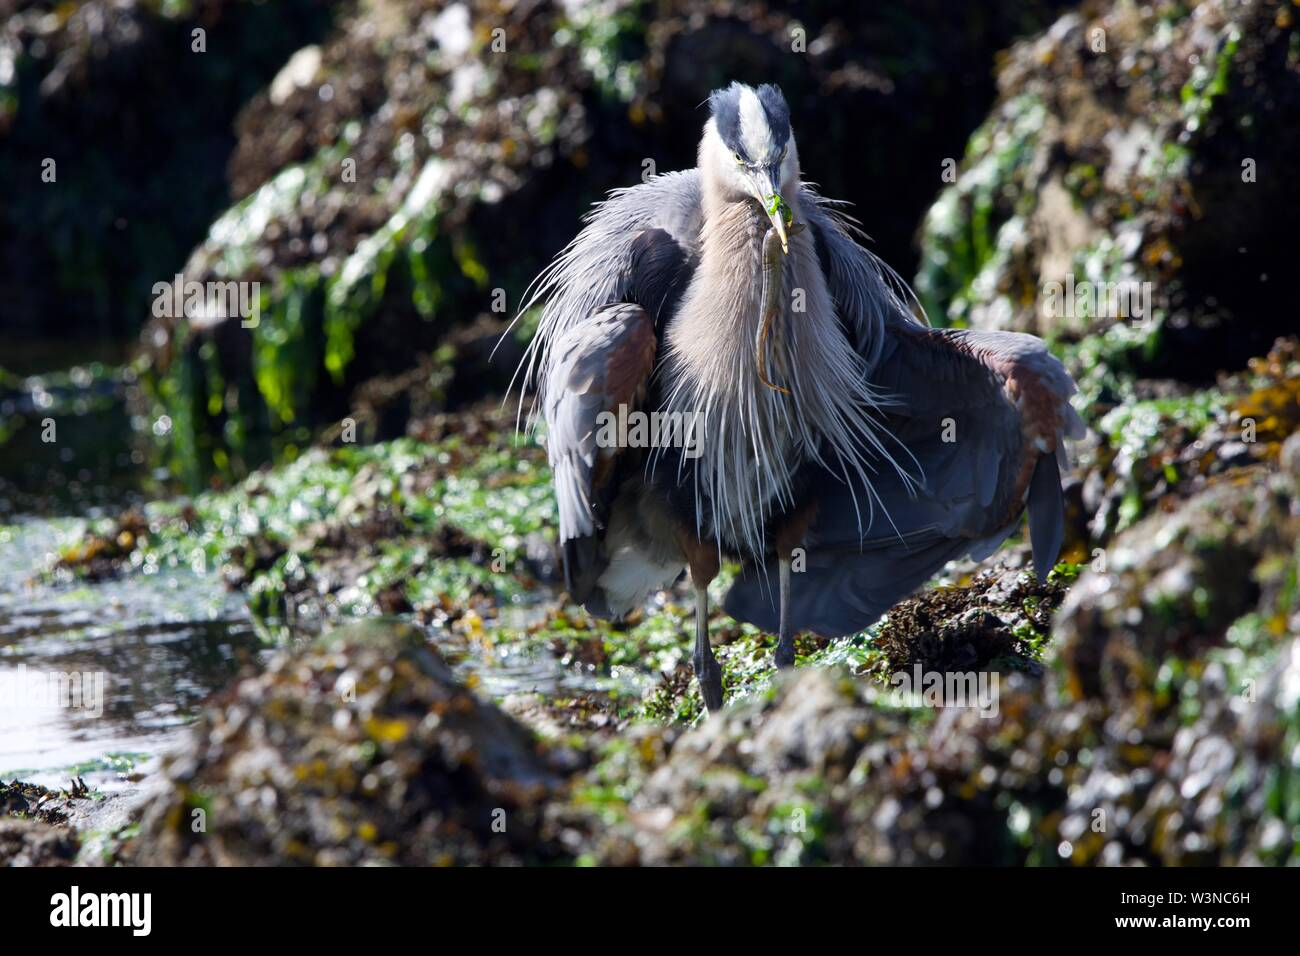 Great blue heron fluffs its feathers and spreads its wings while holding a fish, standing on seaweed covered rocks, Clover Point, Victoria, British Co - Stock Image